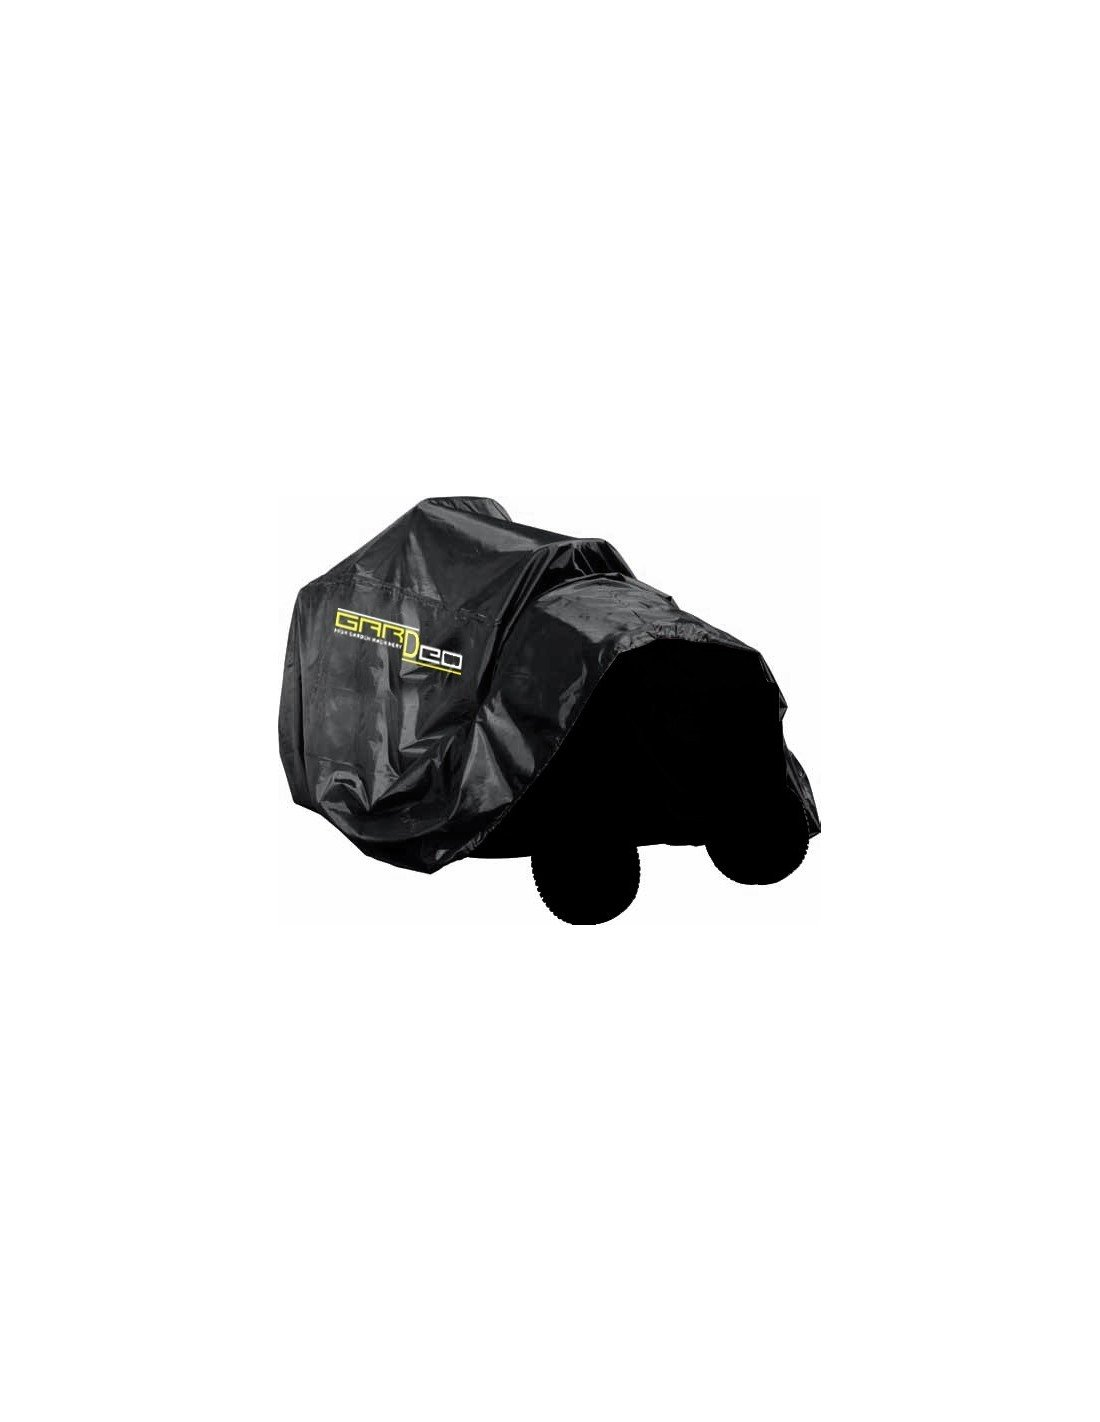 Ride-on Lawn Mower Cover. Gardeo HPTRAC